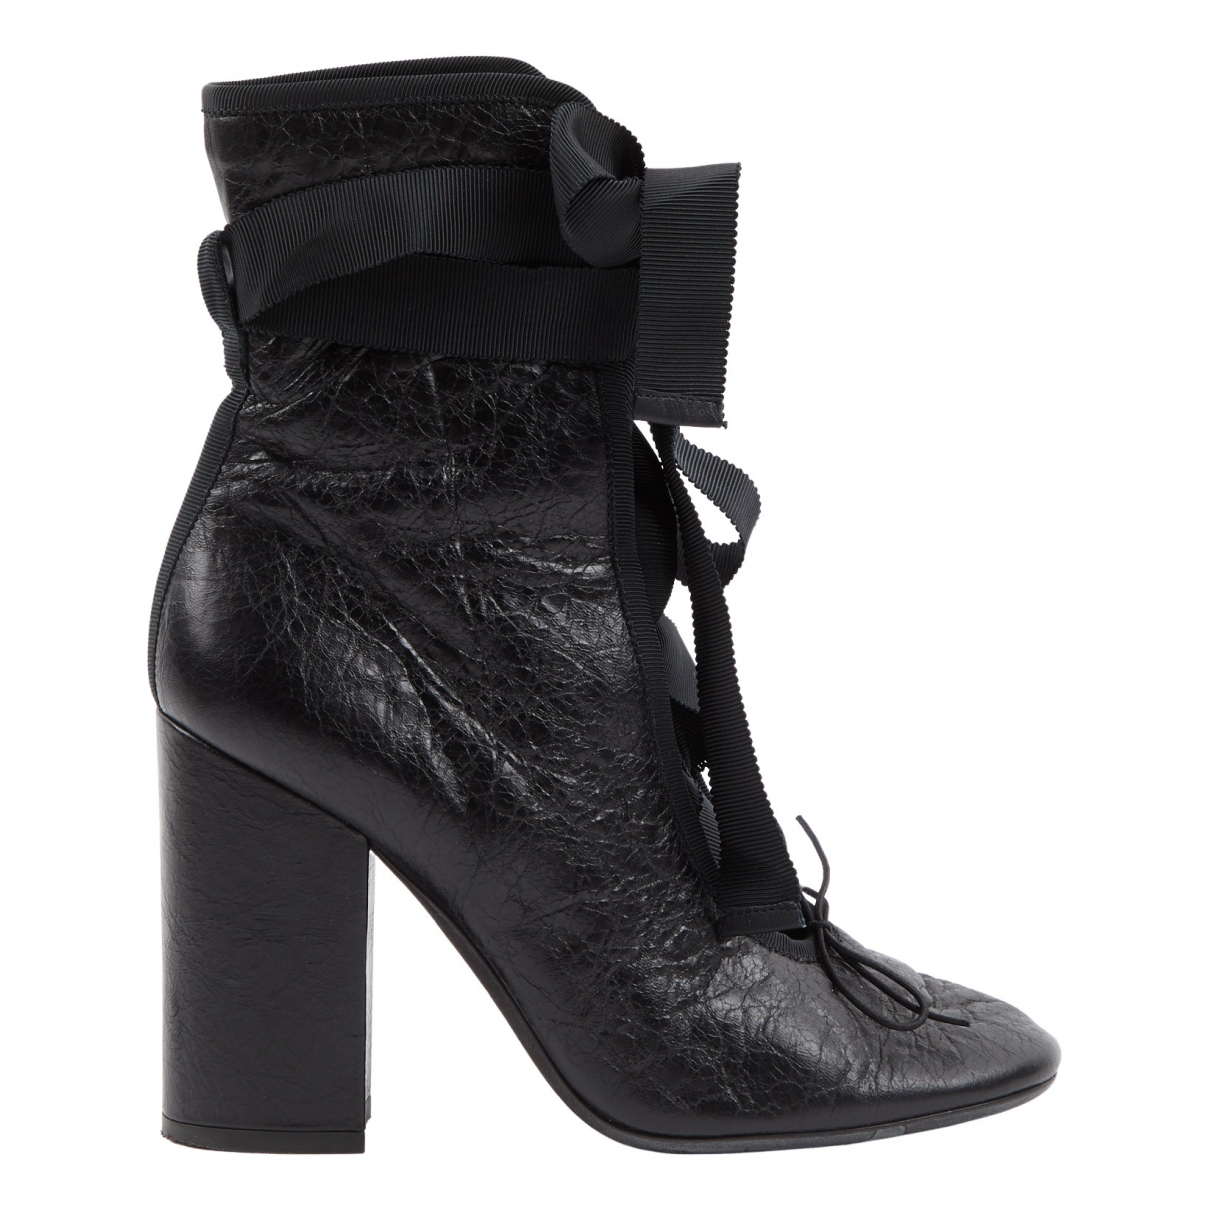 Valentino Garavani N Black Leather Ankle boots for Women 36.5 EU